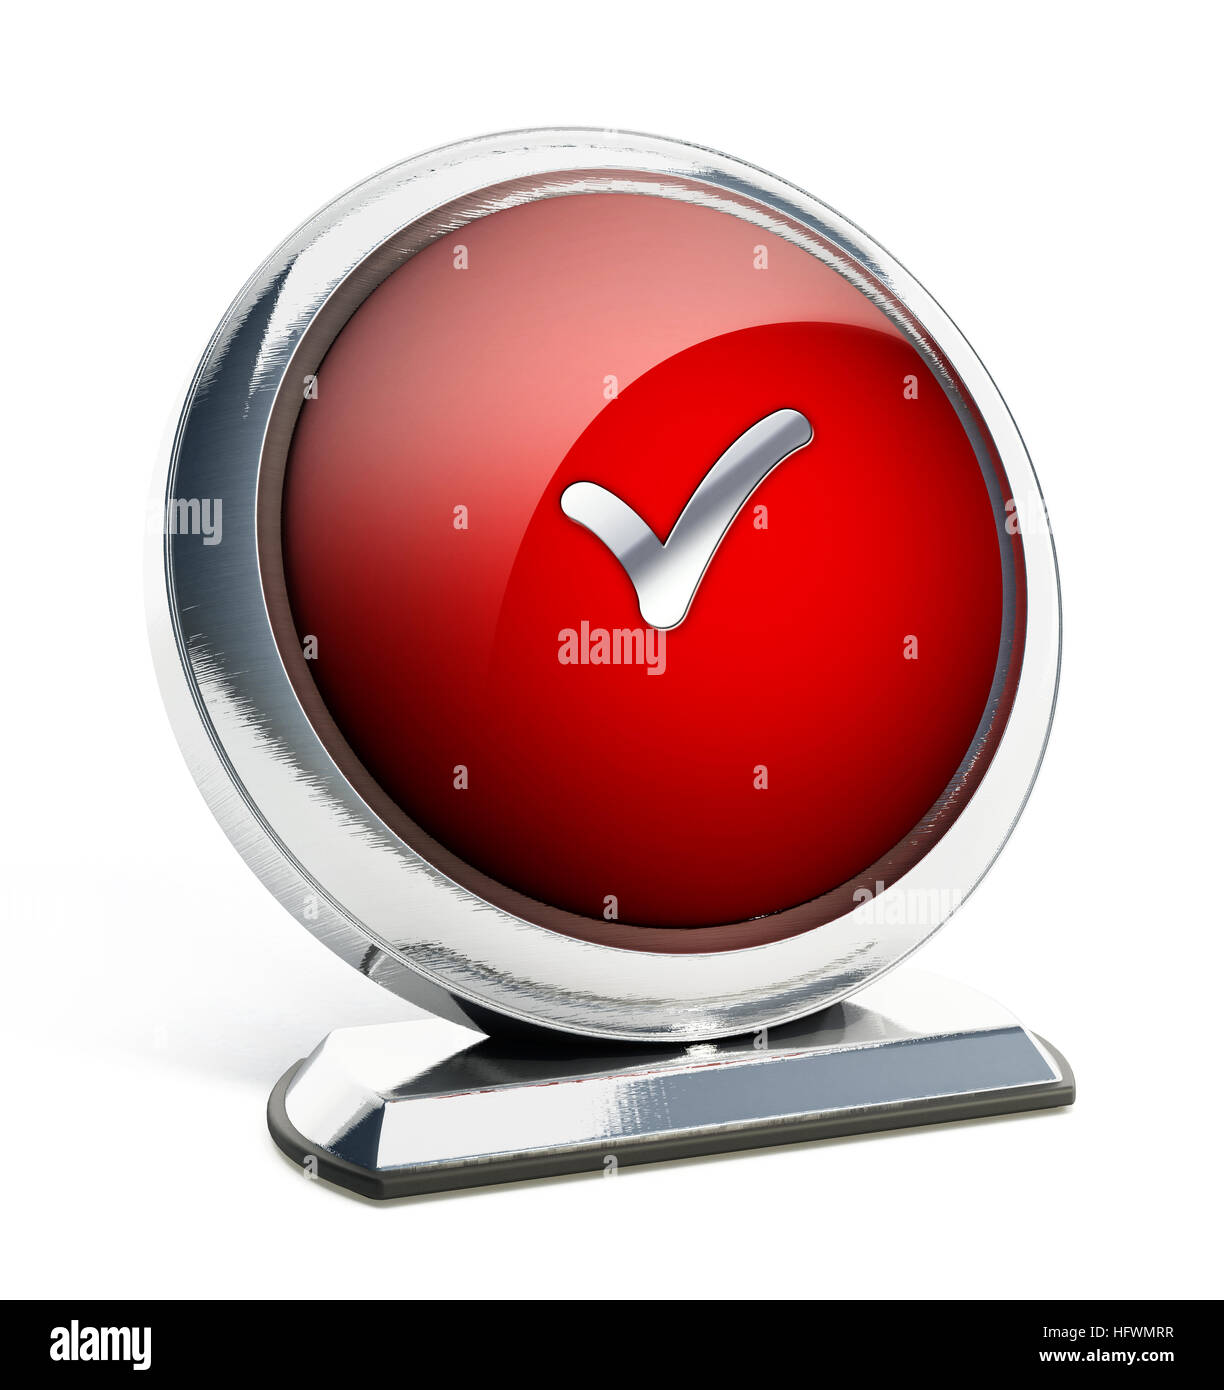 Glossy red button with checkmark symbol. 3D illustration. - Stock Image